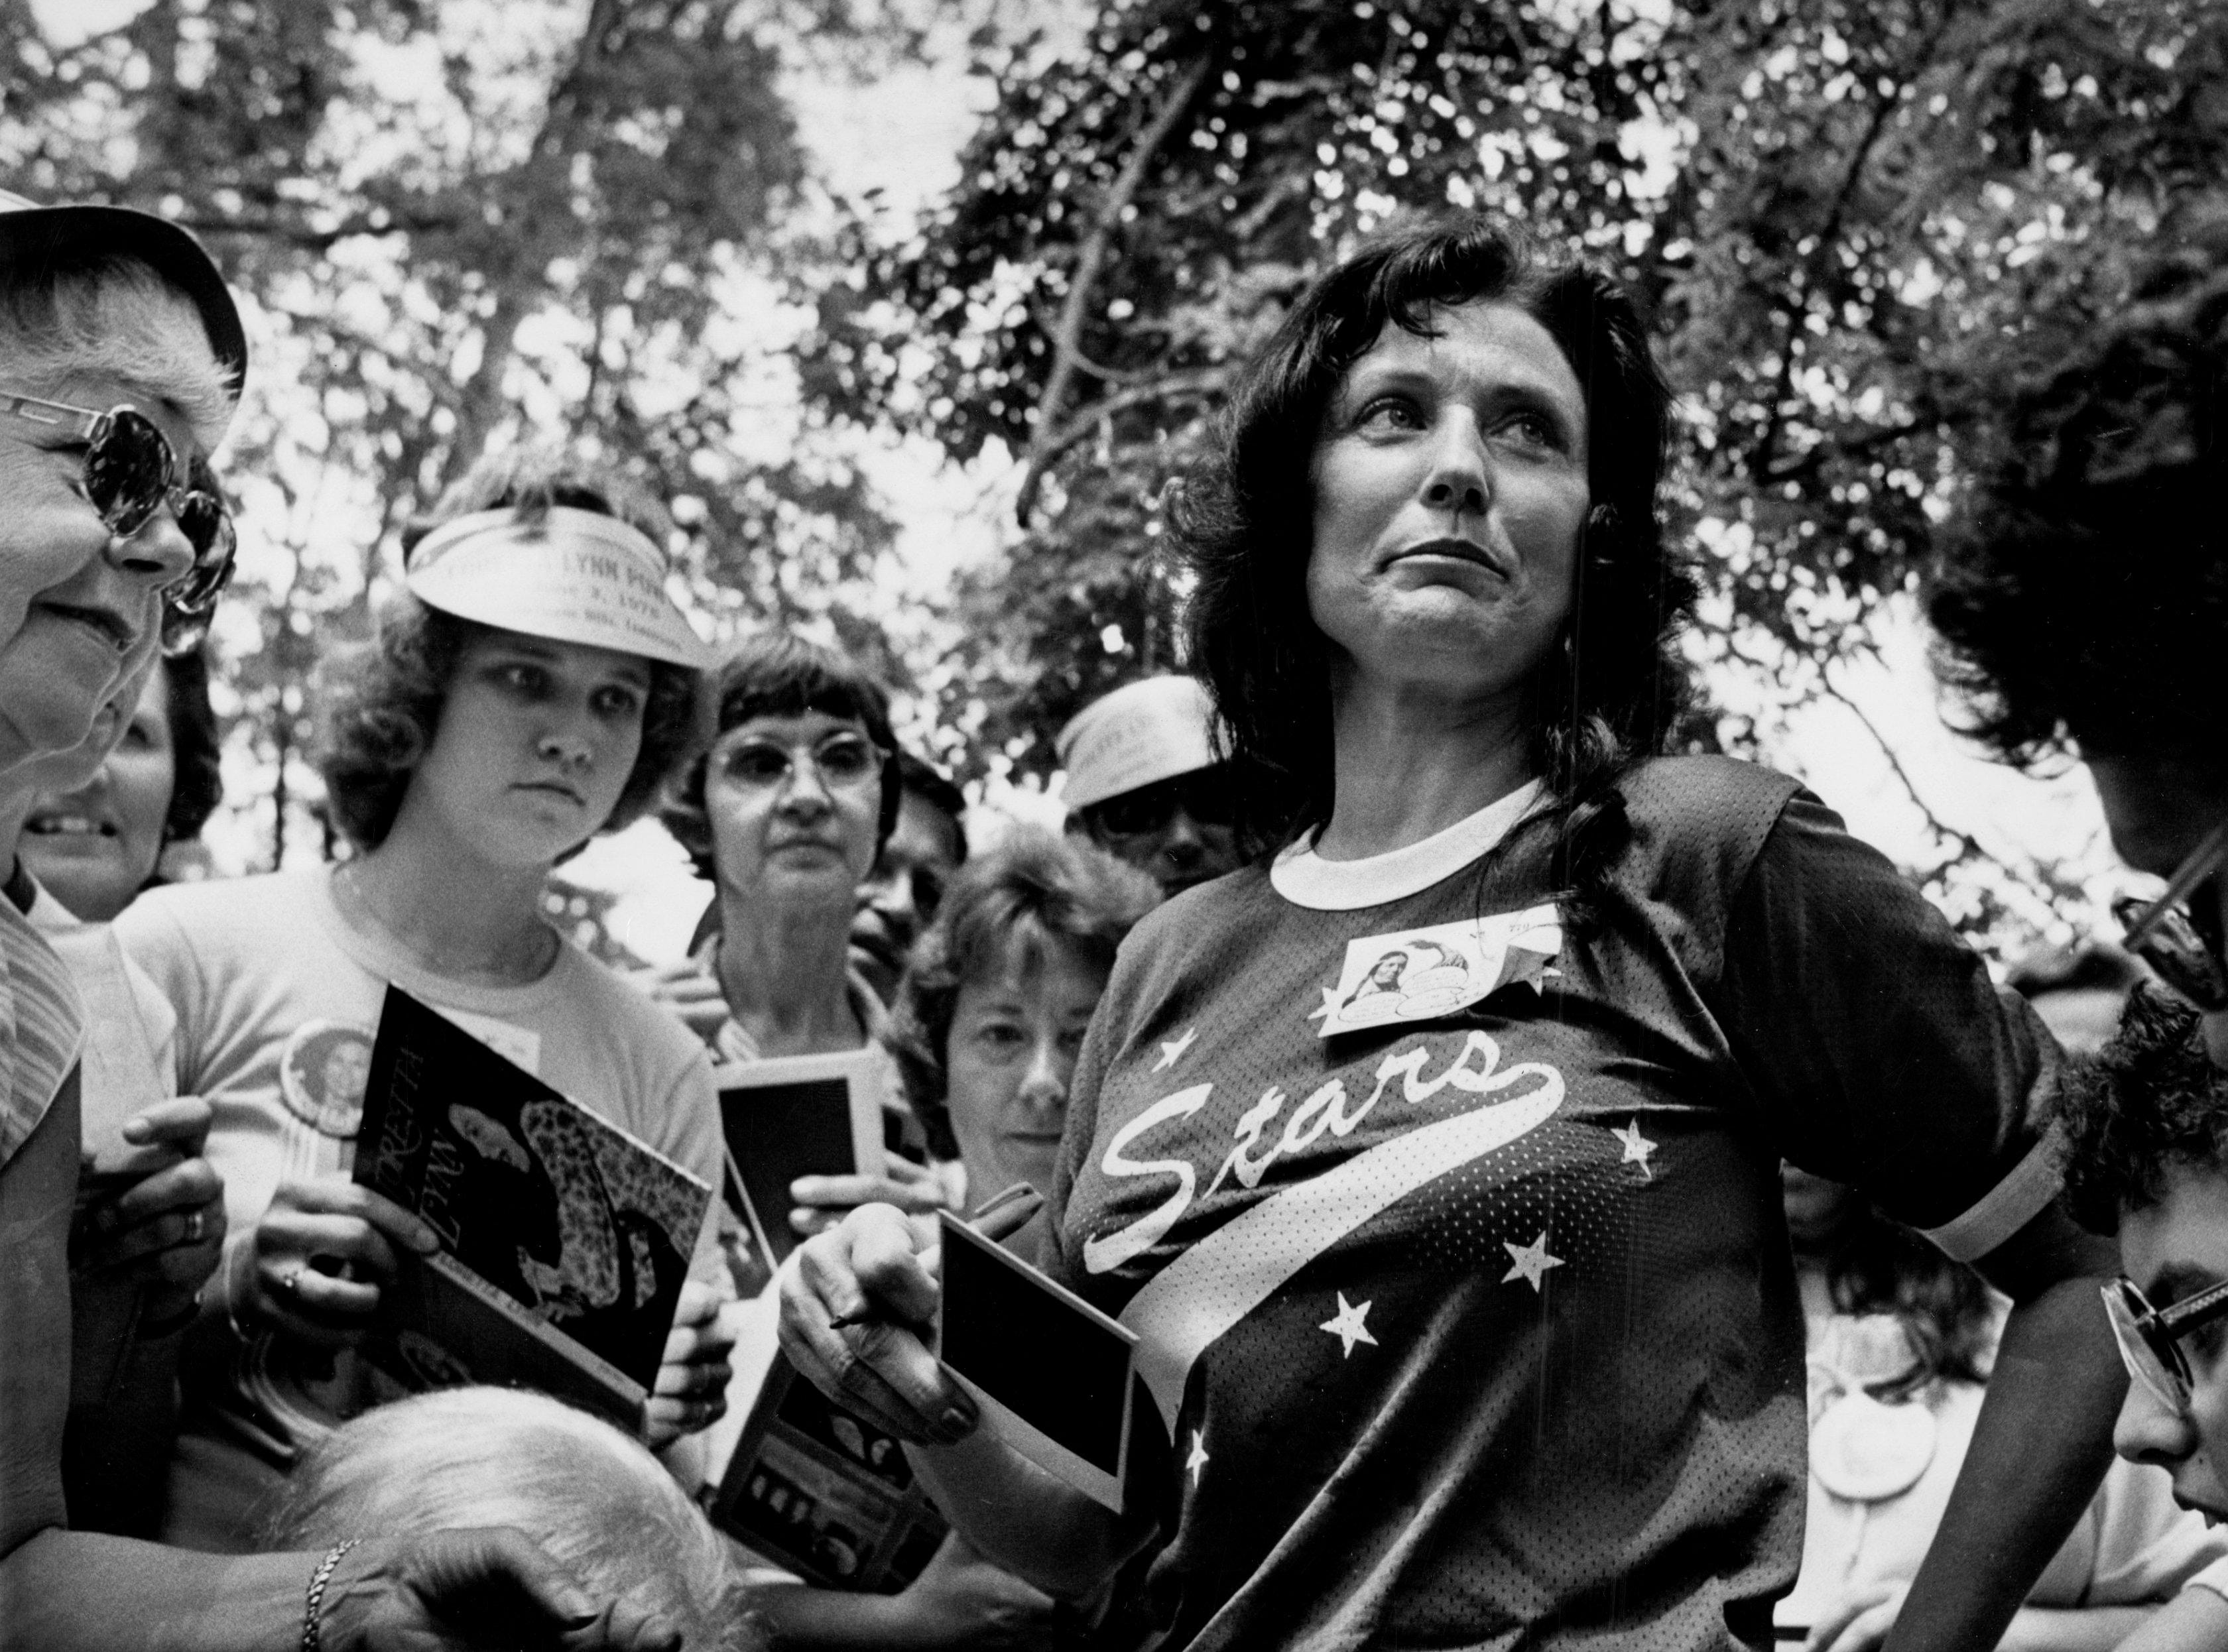 Many of Loretta Lynn's fans got a head start on the week's Fan Fair activities at a special catfish fry at the star's home in Hurricane Mills, Tenn. June 4, 1978. Lynn, center, signed autographs for nearly four hours.